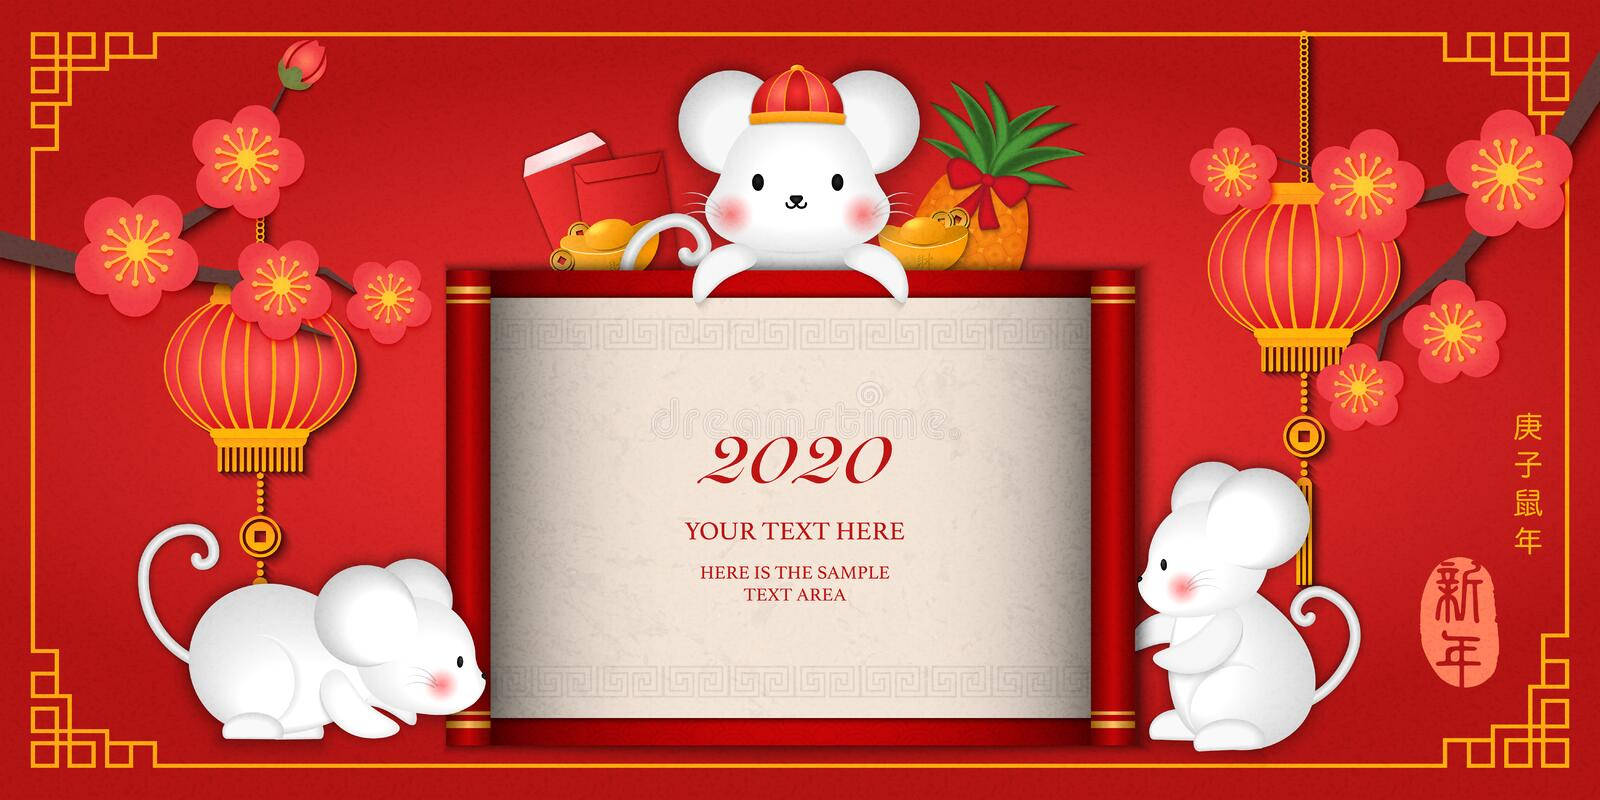 2020 Happy Chinese new year of cartoon cute rat scroll reel template and plum blossom lantern pineapple golden ingot red envelope stock illustration